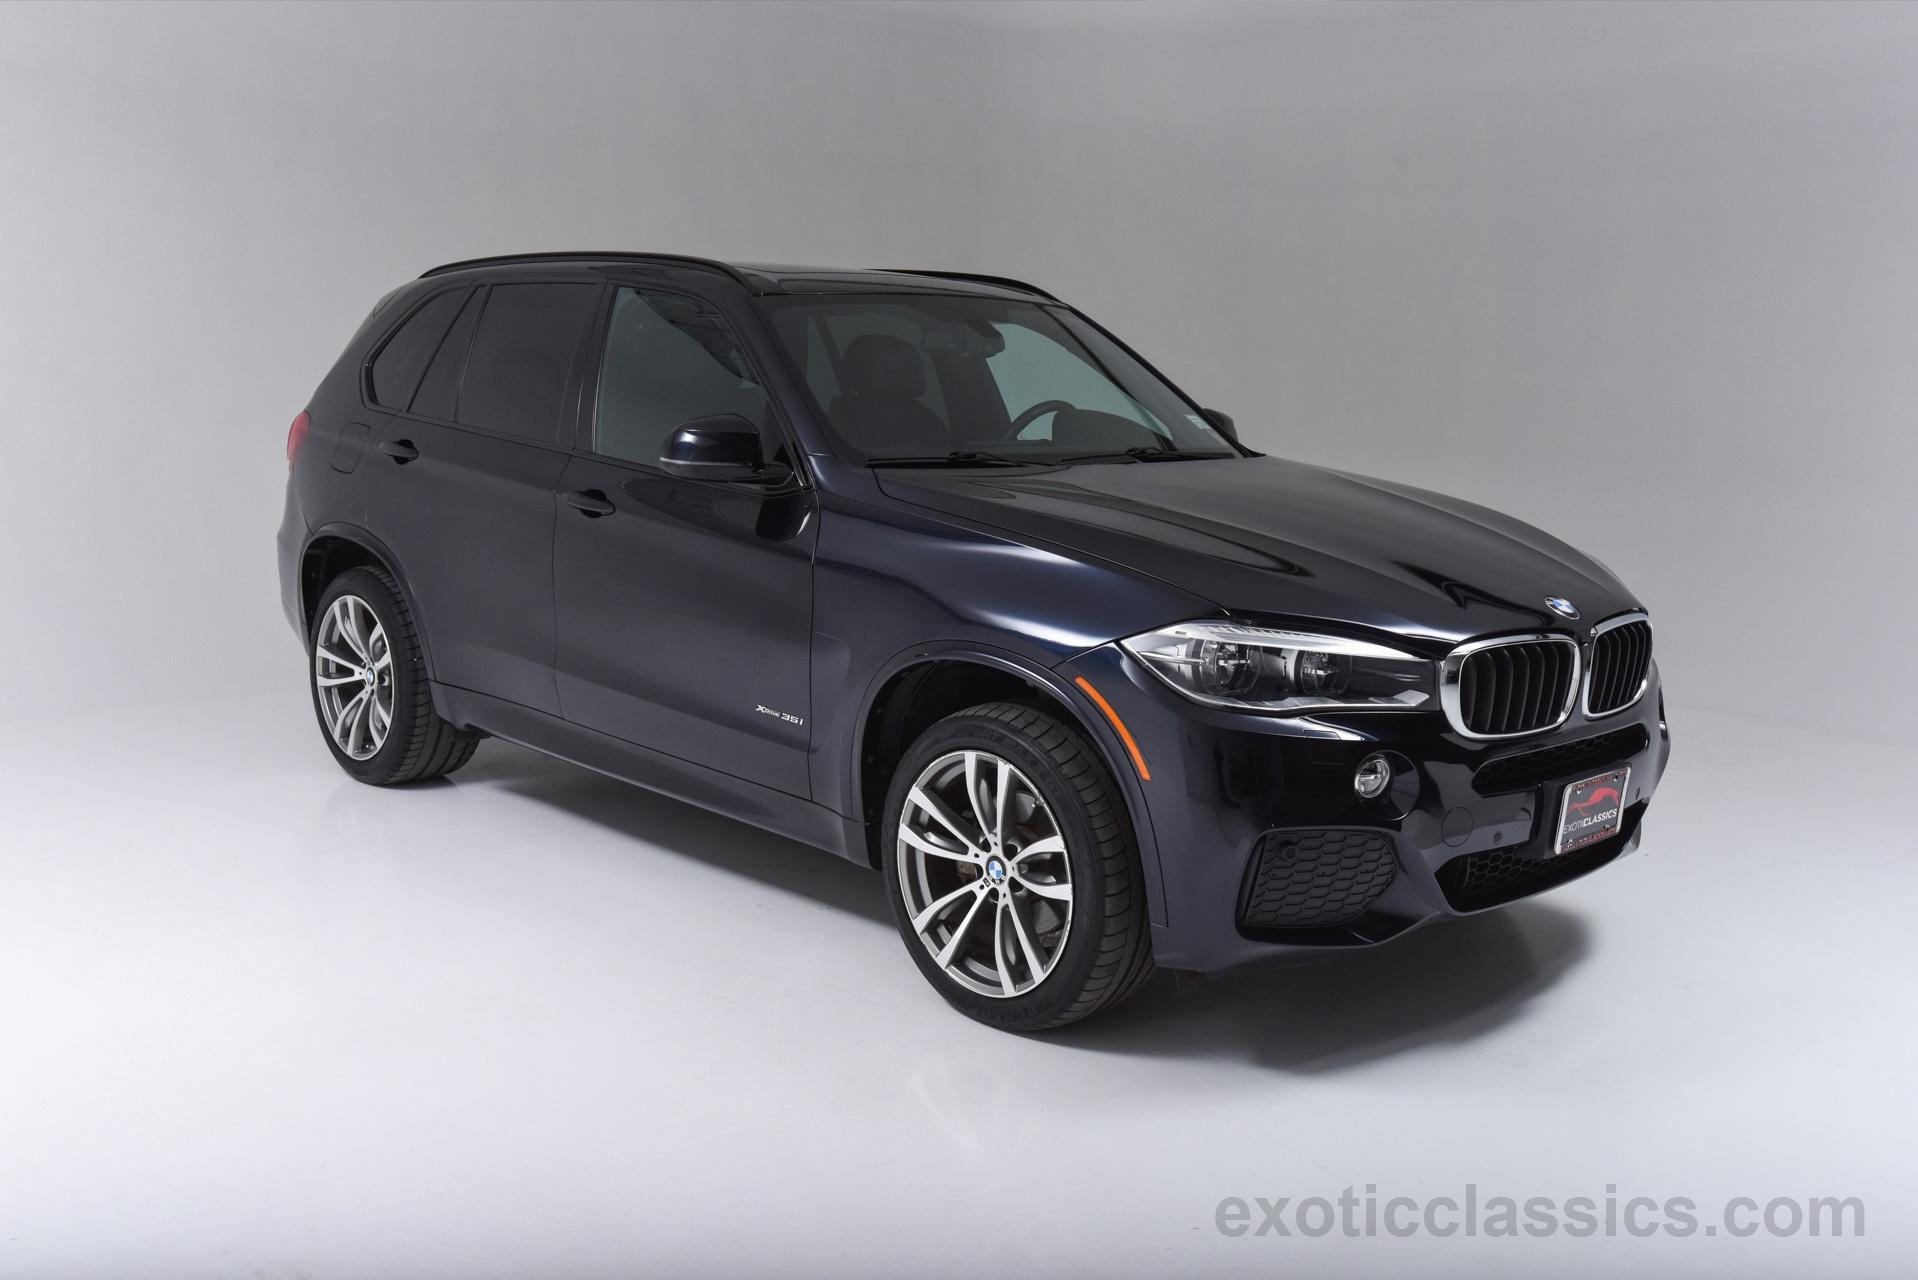 2014 bmw x5 xdrive35i exotic classic car dealership new york l champion motors international. Black Bedroom Furniture Sets. Home Design Ideas